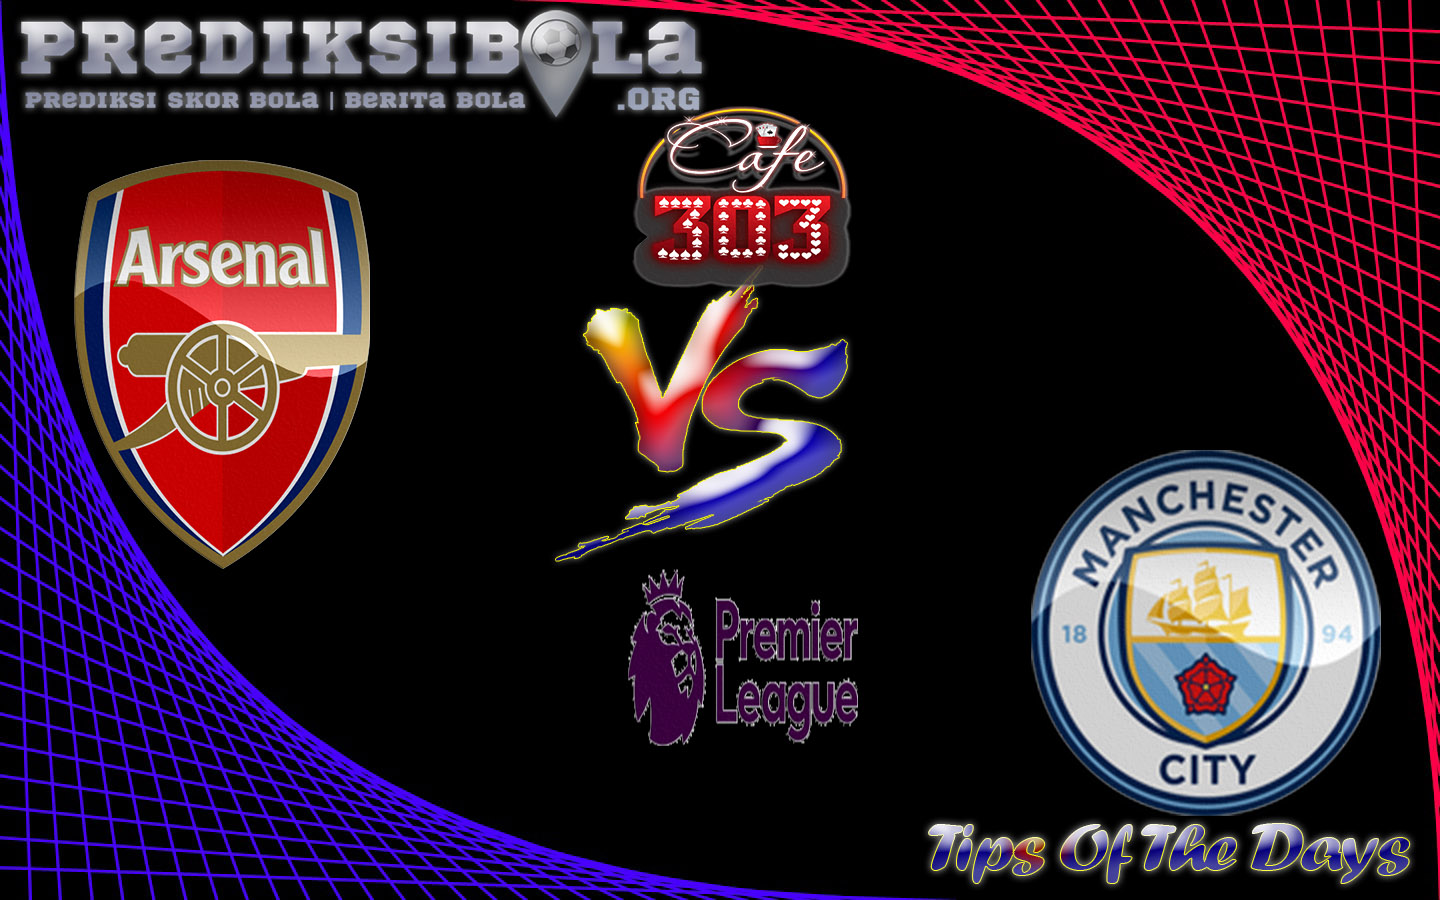 Prediksi Skor Arsenal Vs Manchester City 2 April 2017